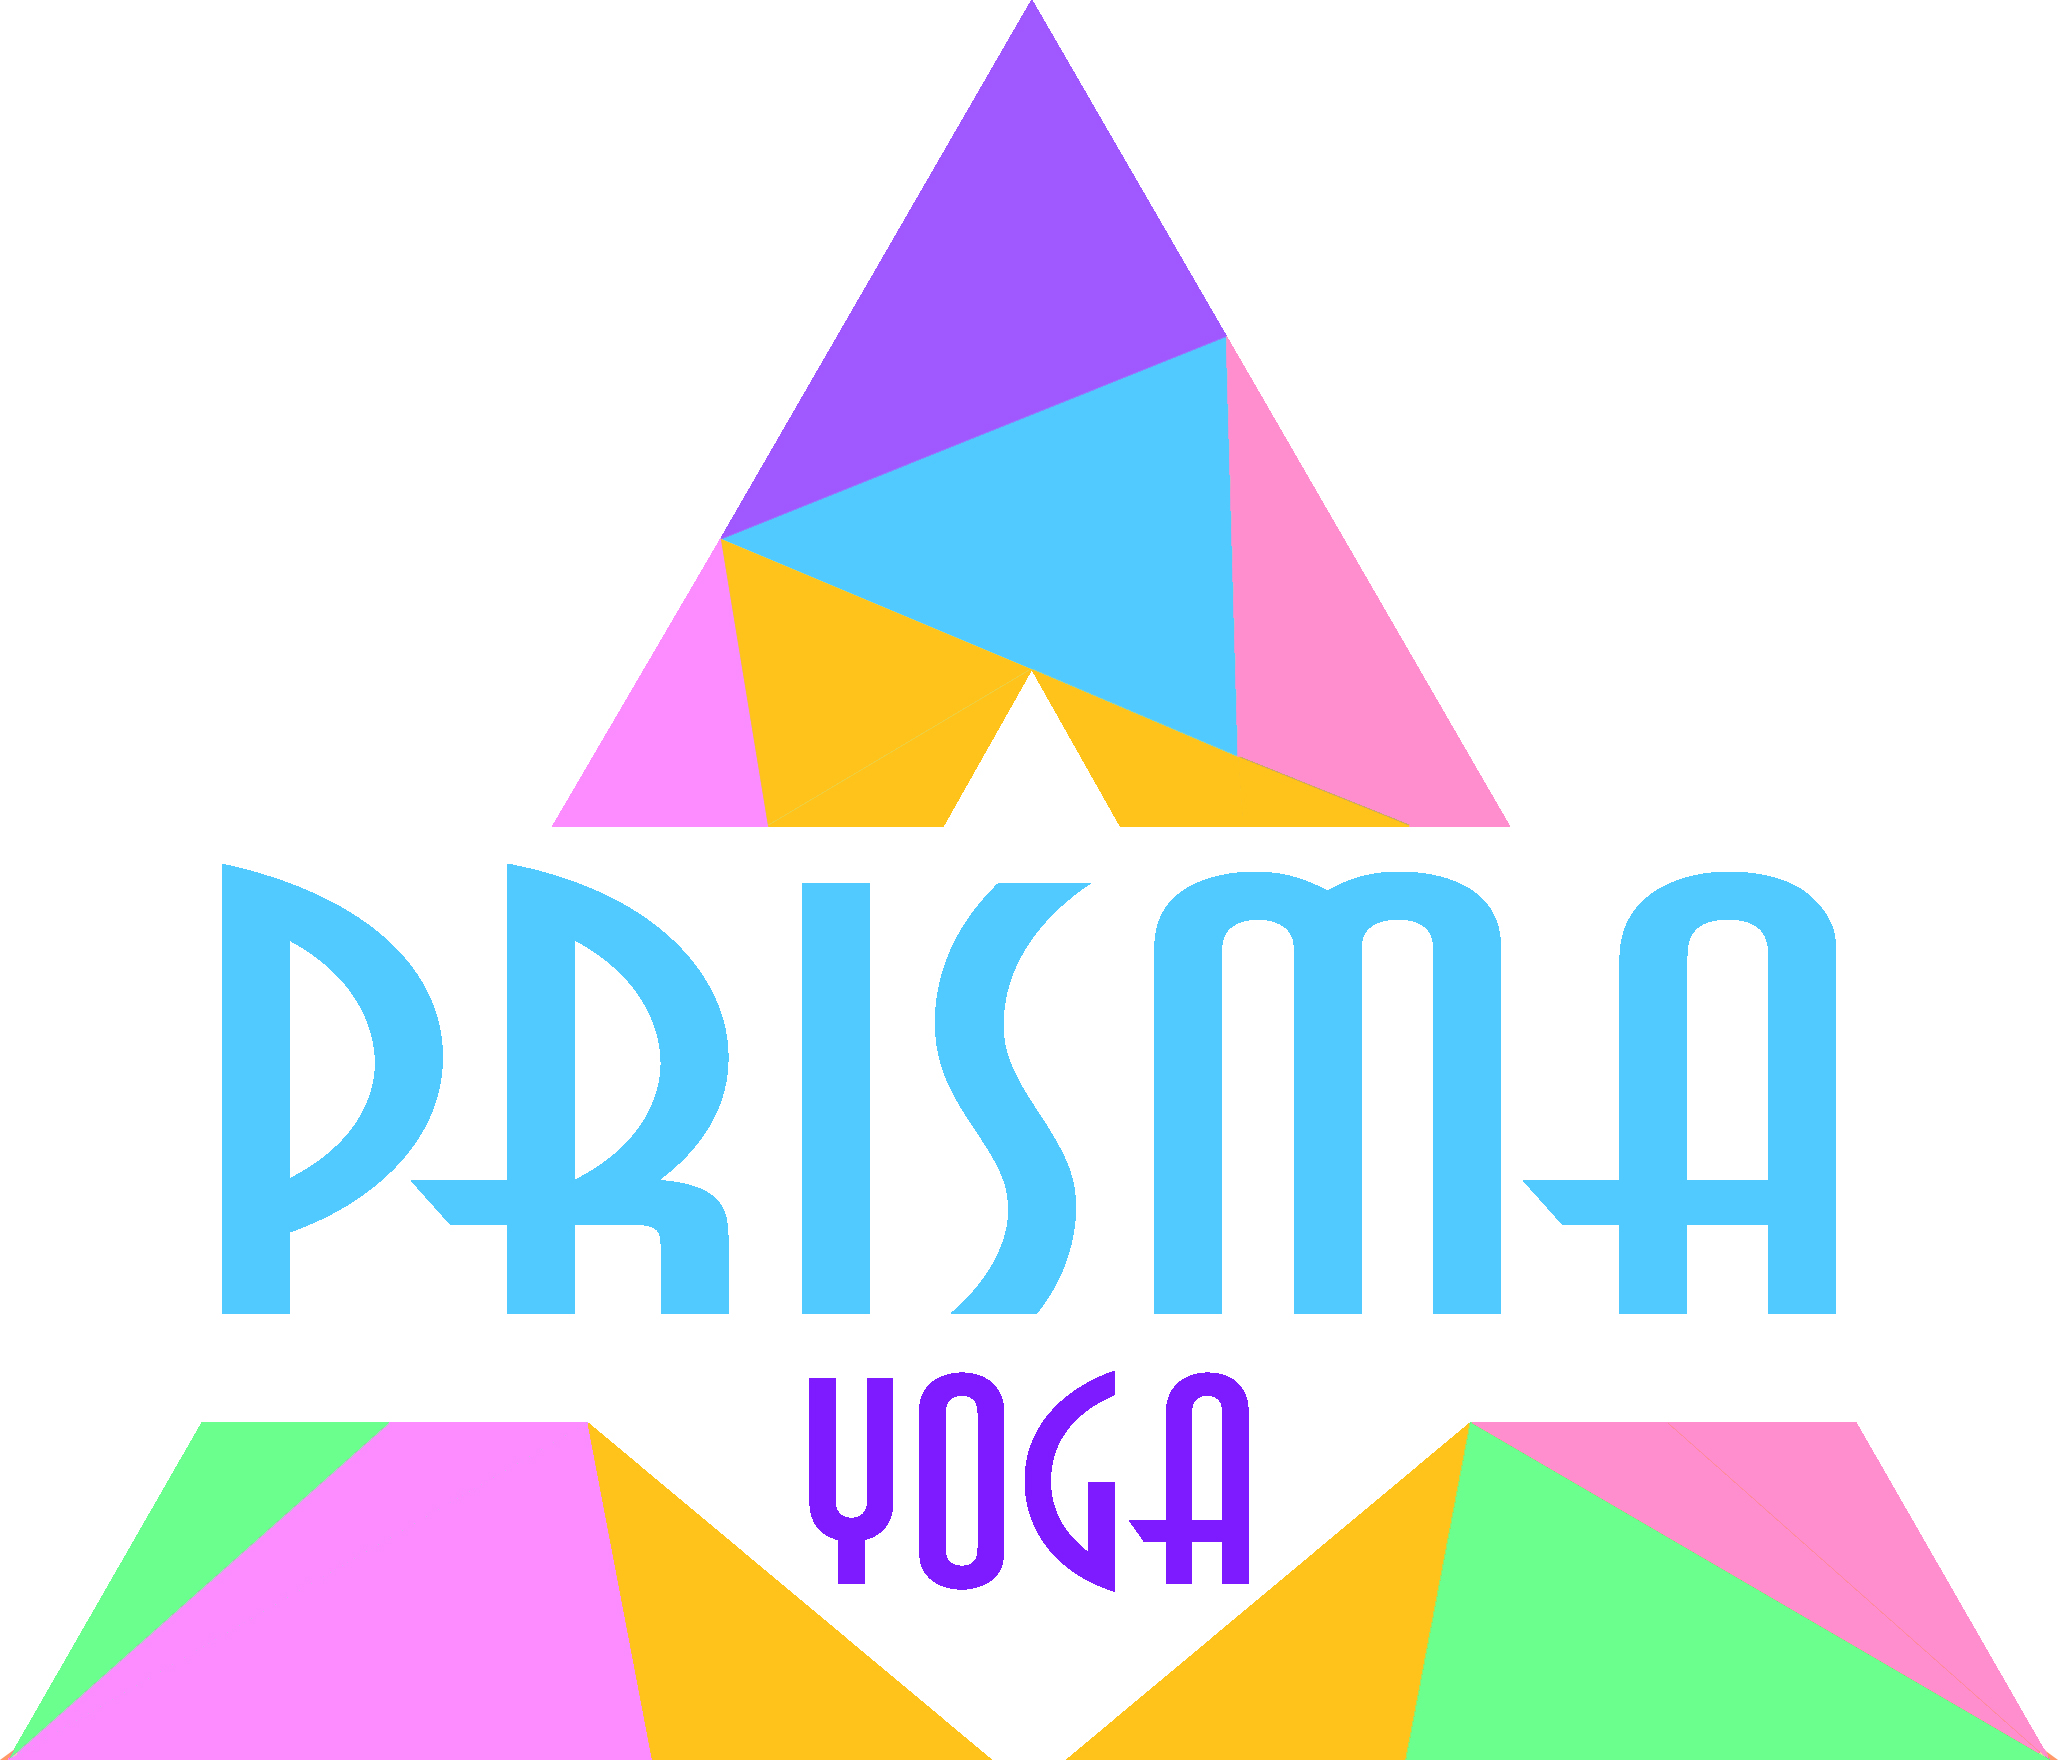 PRISMA YOGA & DANCE FITNESS